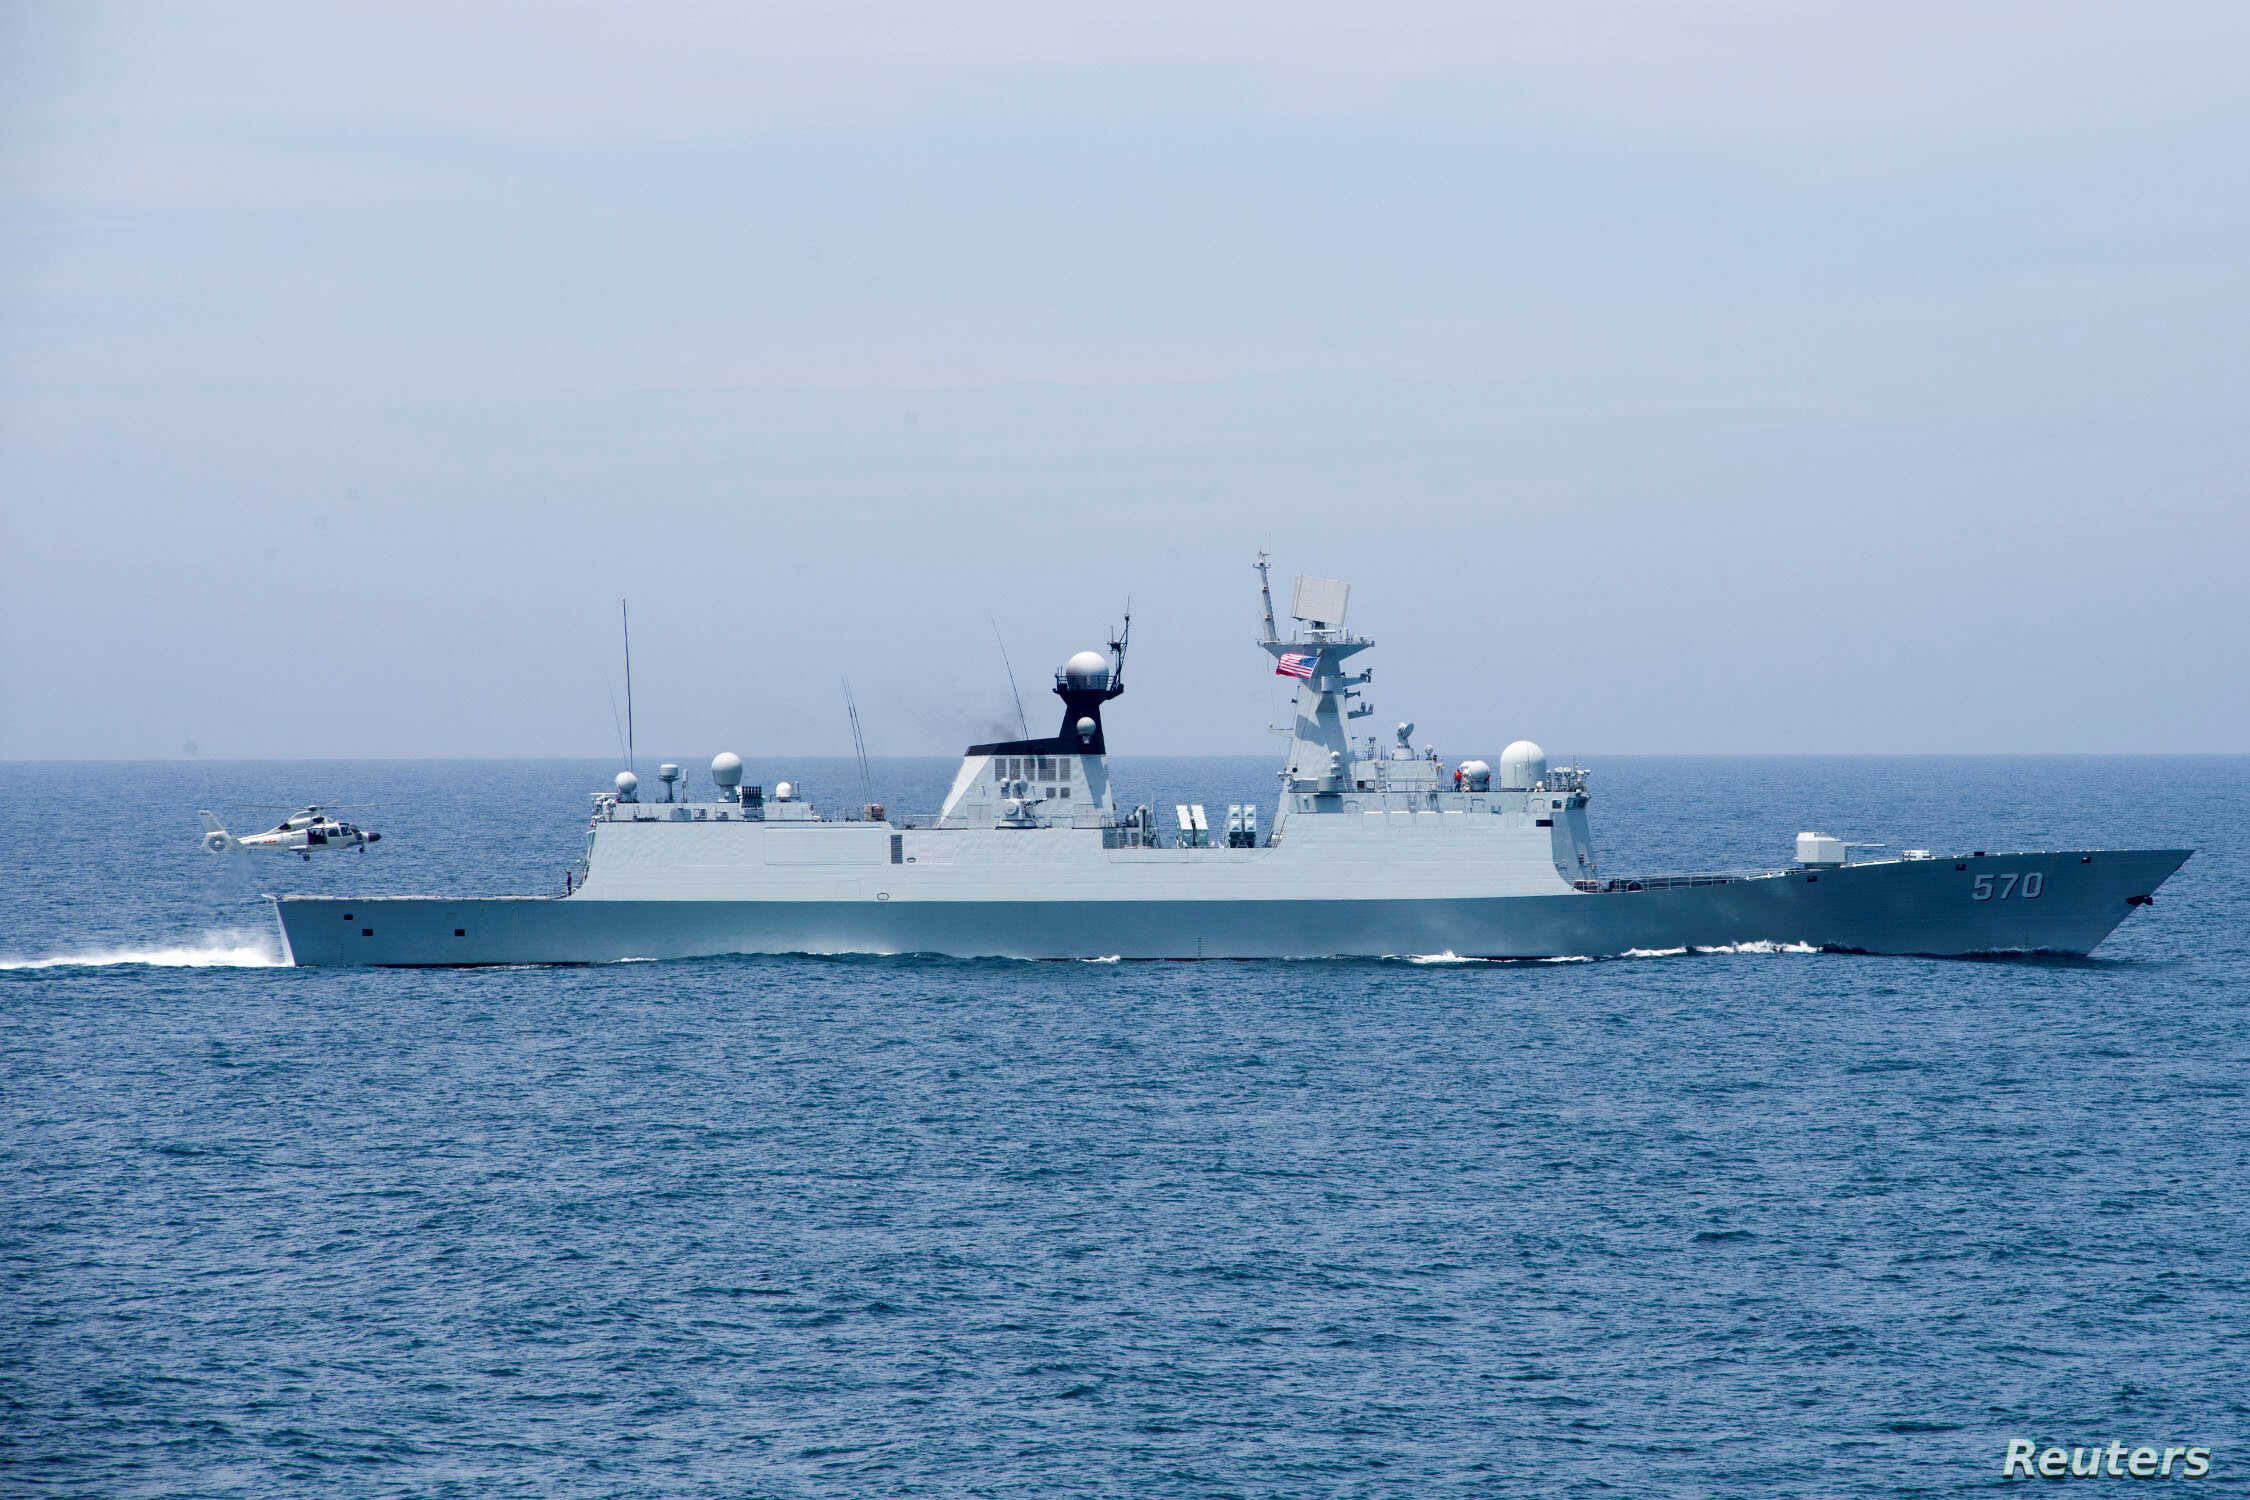 Australian frigate joins USA ships in S. China Sea amid rising tension